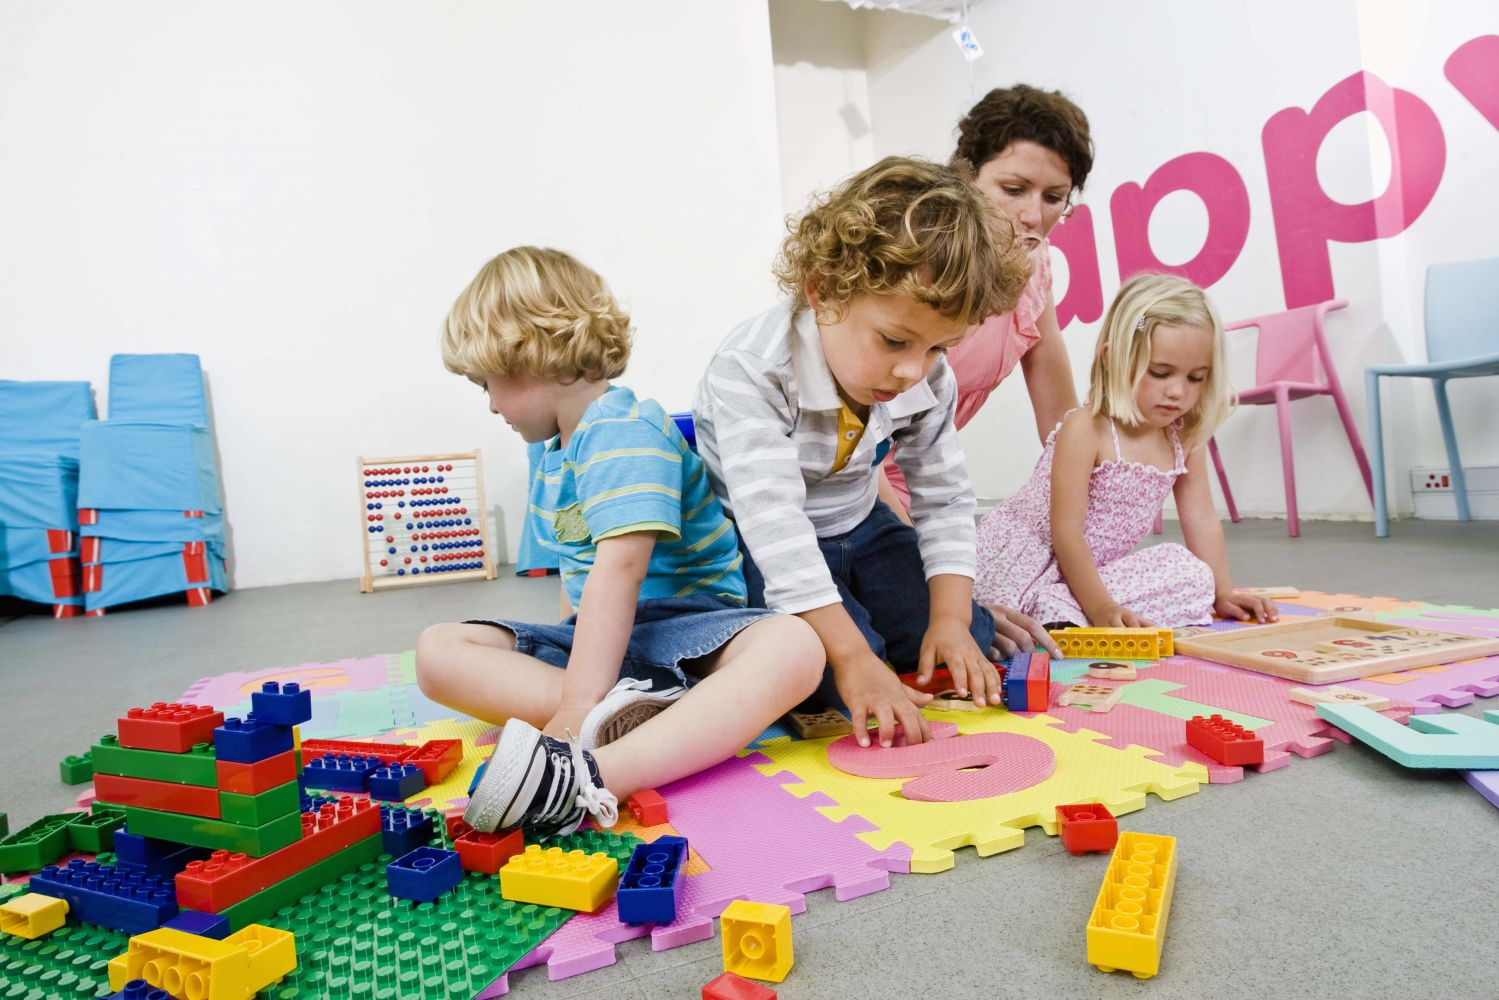 In several countries, including the US, there is an urgent need for safe, affordable childcare along with an analysis of the true social cost of not providing quality childcare. (Copyright: WFS)